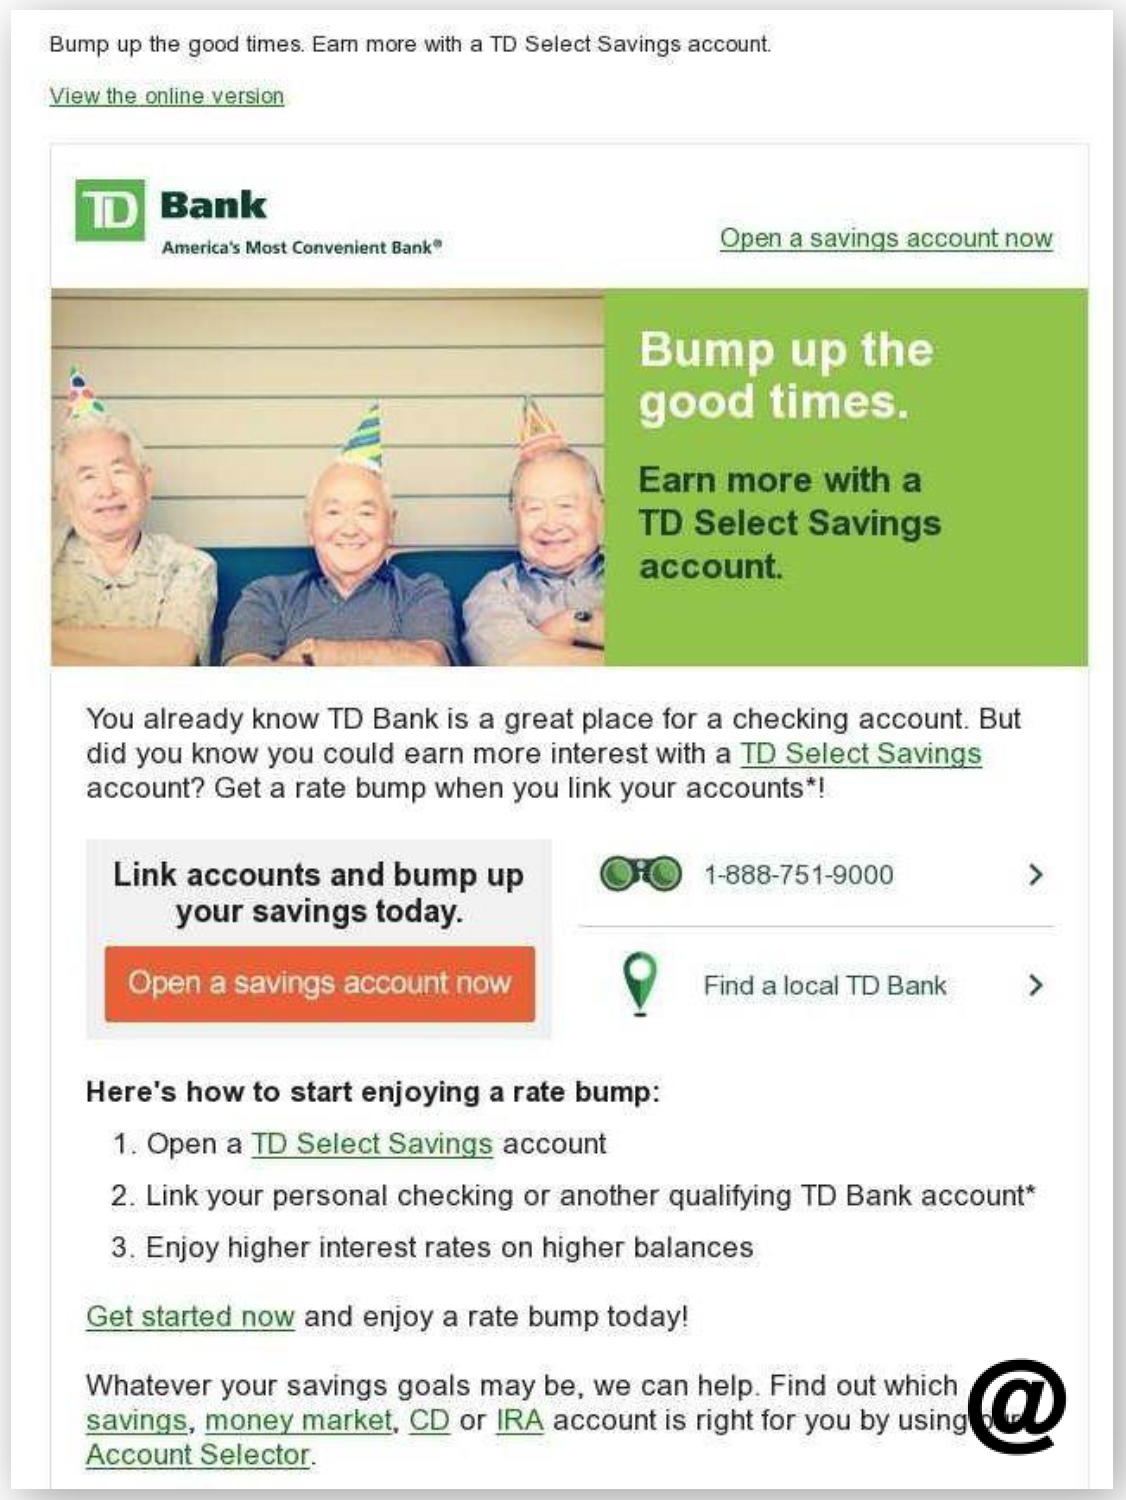 Td Bank Savings Crosssell Email  The Financial Brand. Gps Tracking For Equipment Hair Salon System. Breeze Dental Gilbert Az Day Trade Strategies. Cornerstone Wealth And Tax Advisory Group. Euphoria Salon Henderson The Punctual Plumber. California Fictitious Business Name Search. College Biology Project Ideas. School Inventory Software Free Wordpress Host. Smart Car Crash Test Video Cna Training Utah